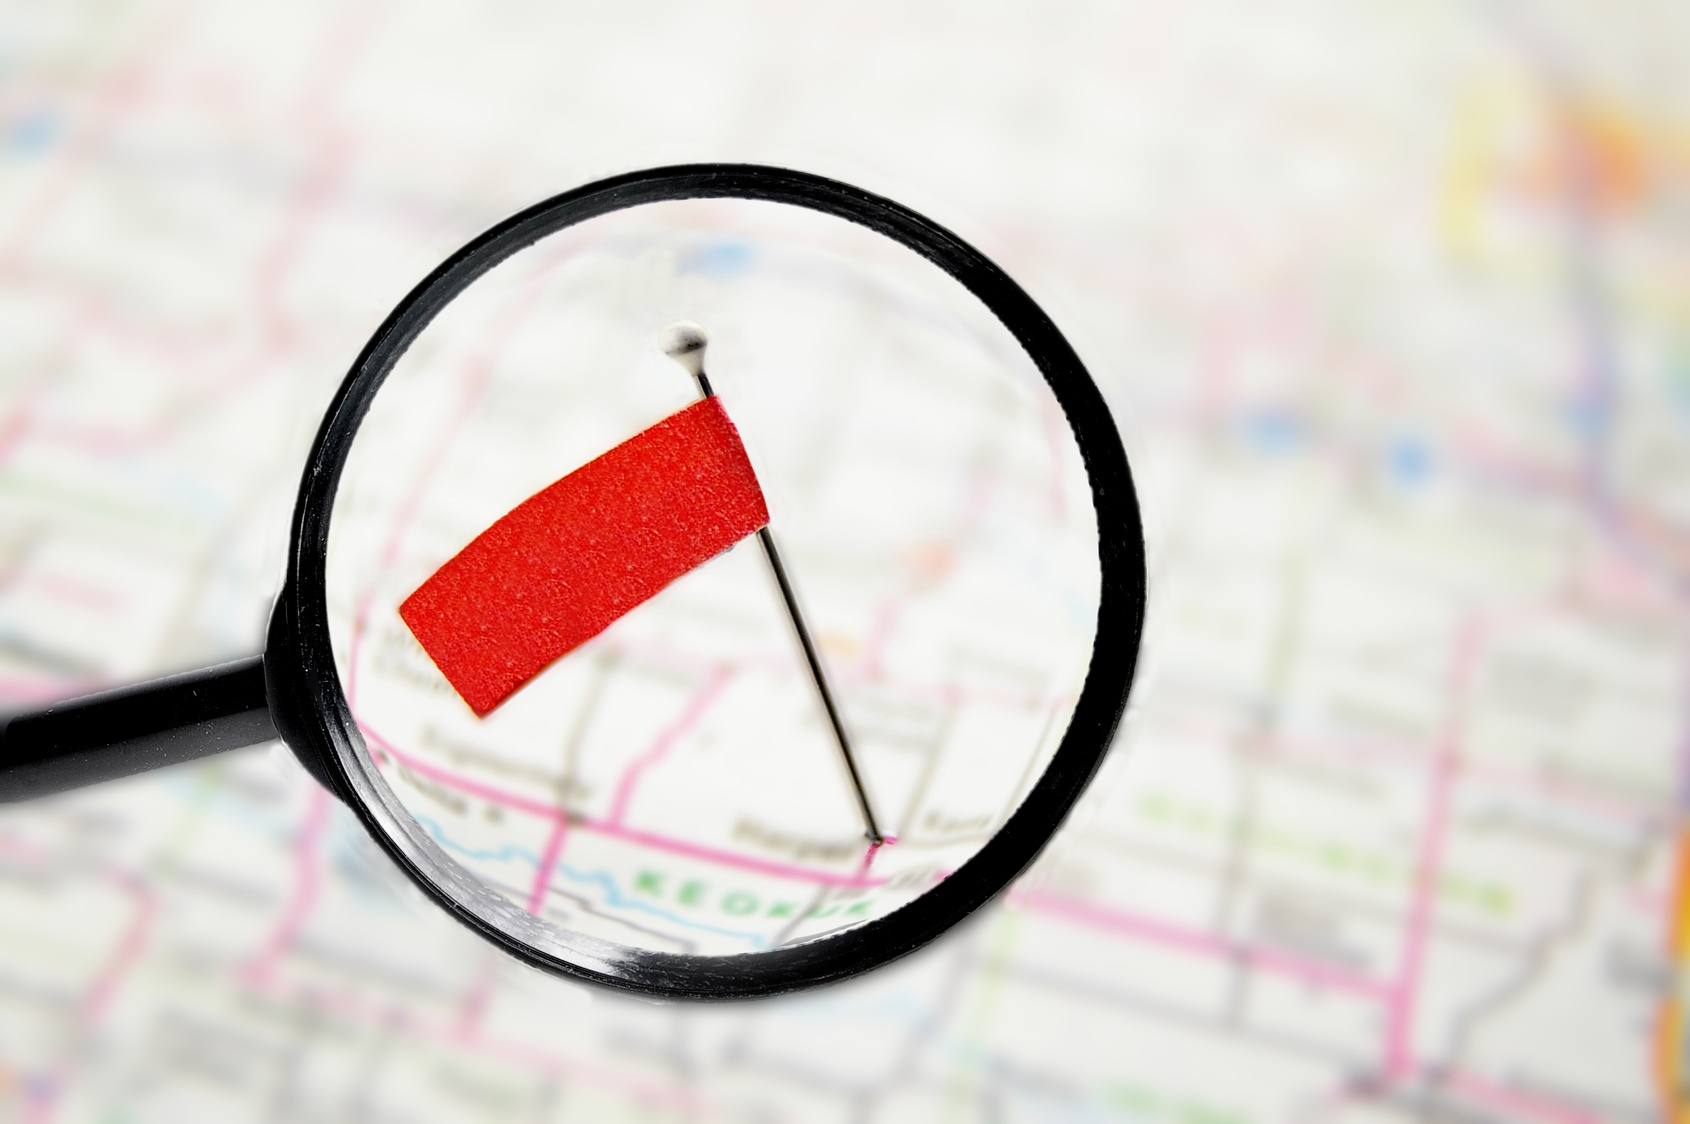 Effective, Low-Cost Real-Time Location System